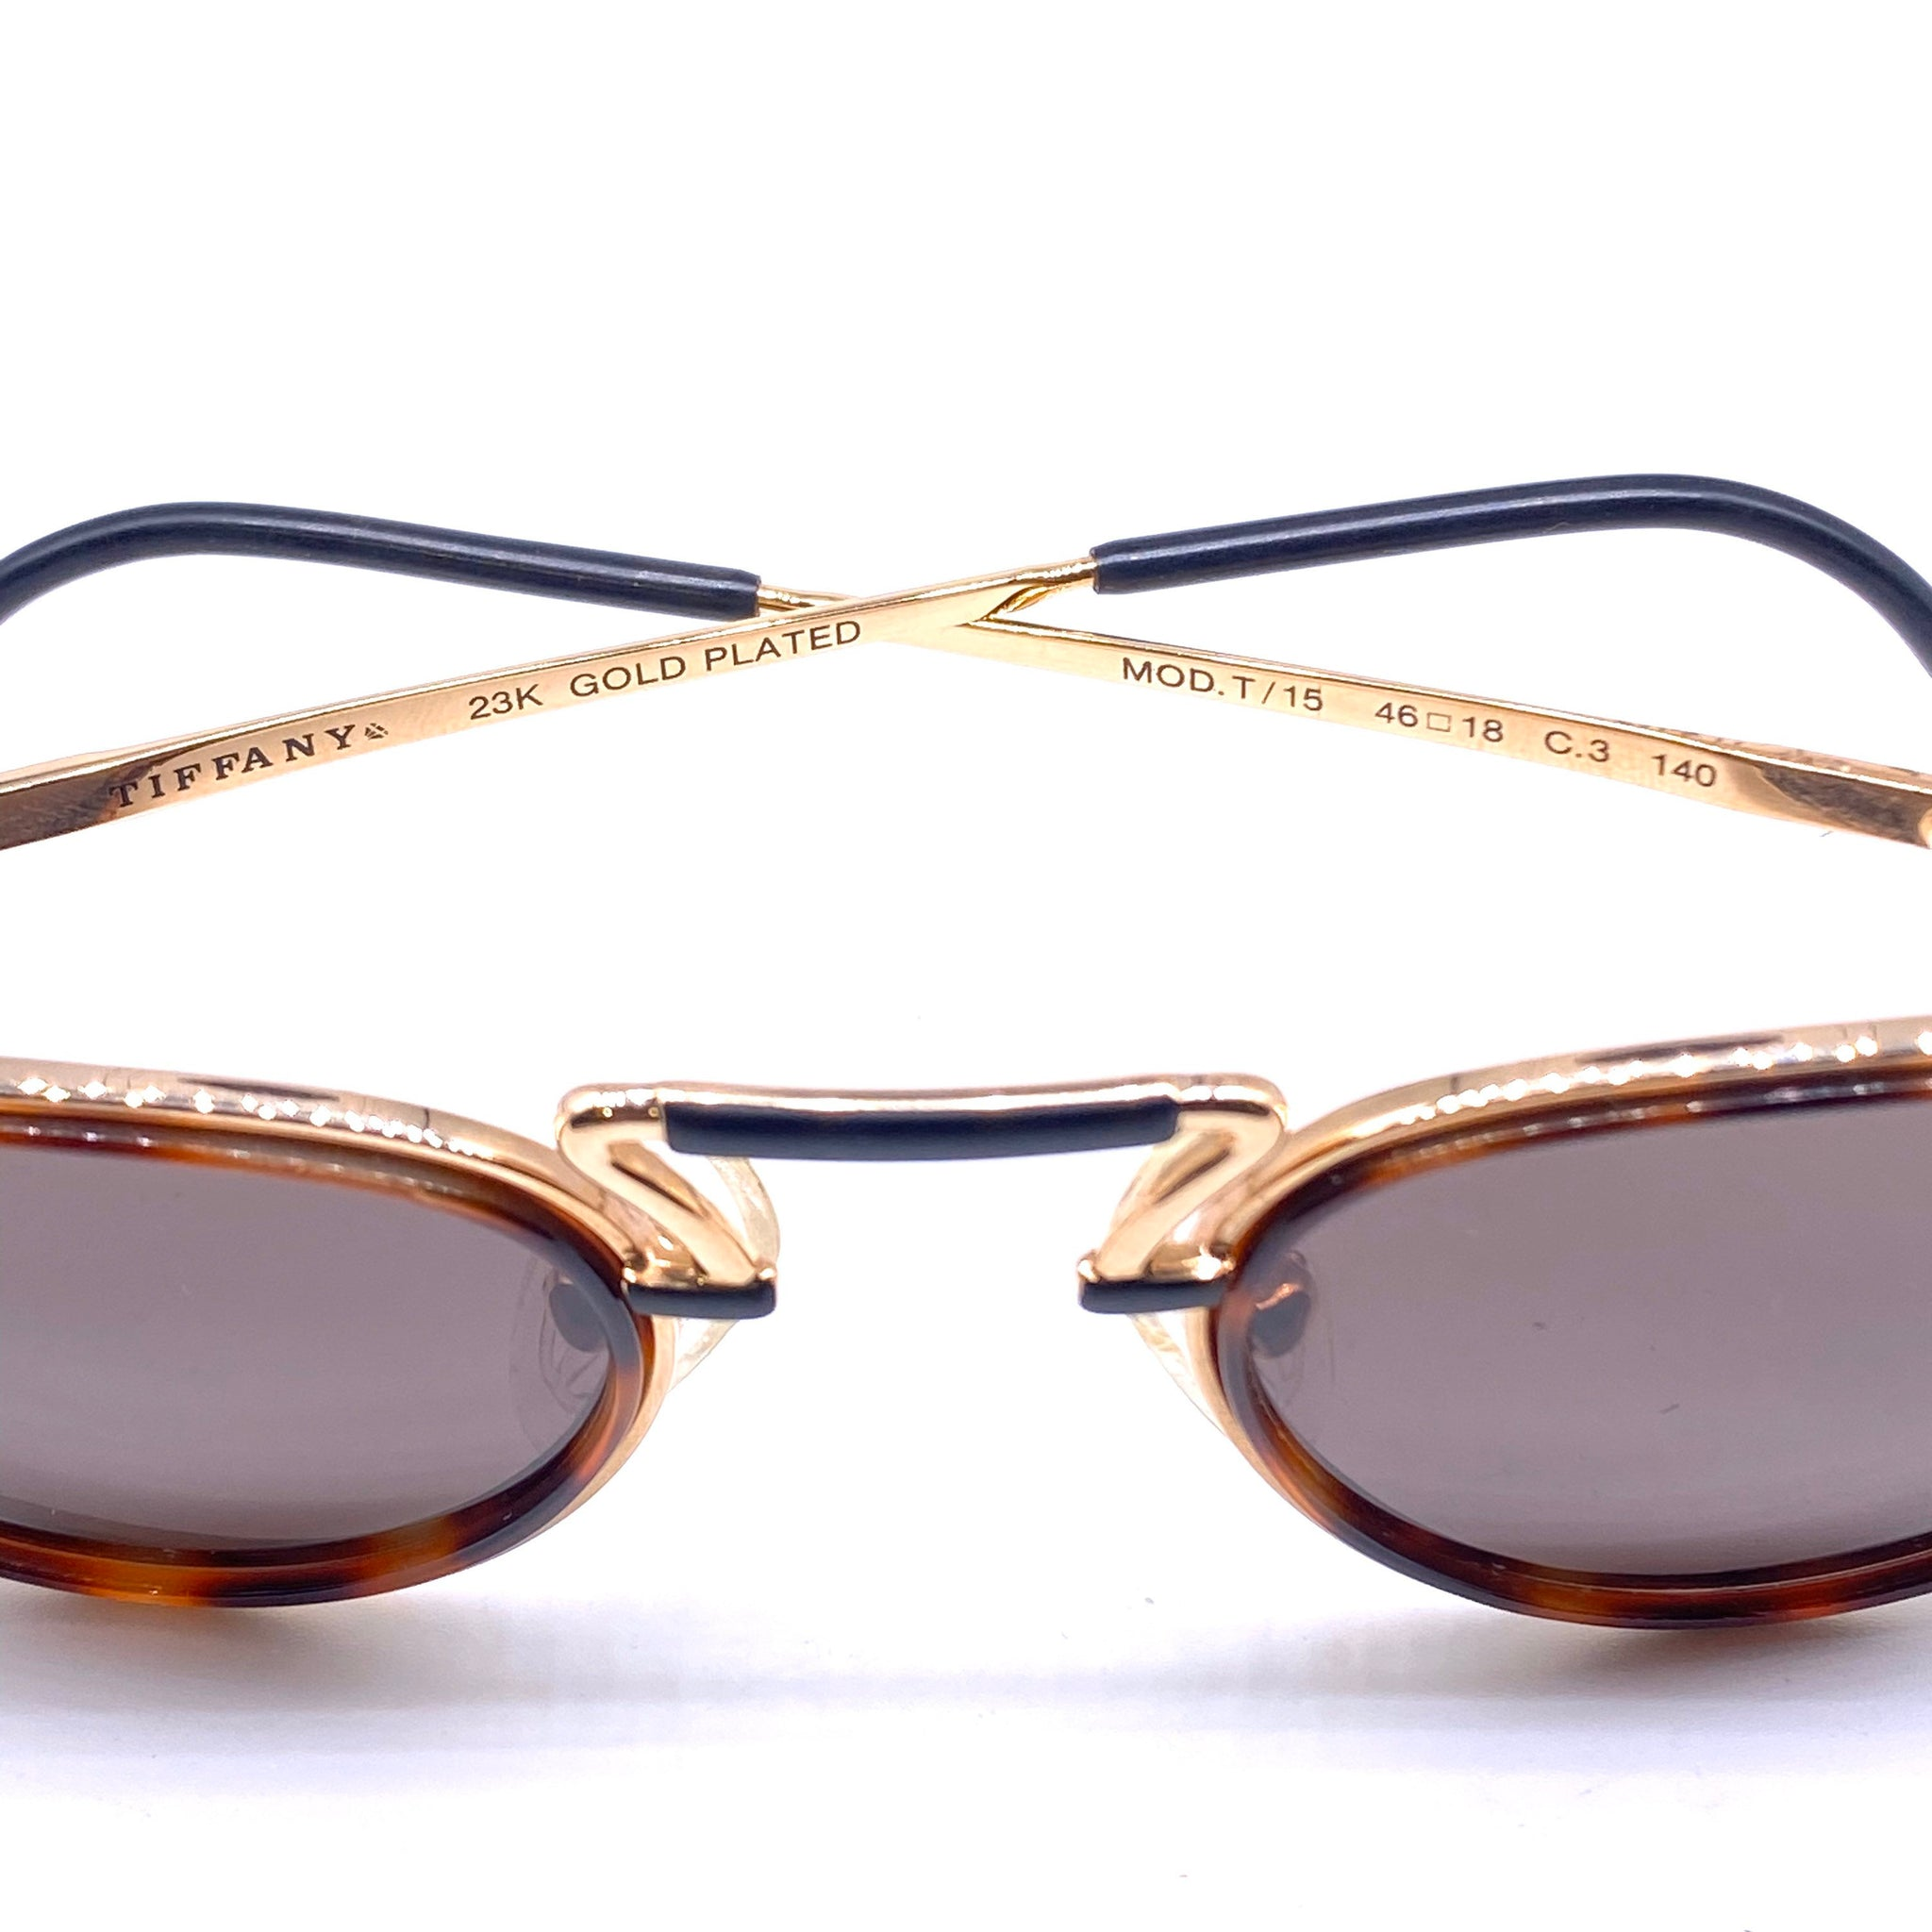 Tiffany T15 round hip sunglasses, 23k gold filled with tortoise rims, Italy 1980s NOS - viceversashop